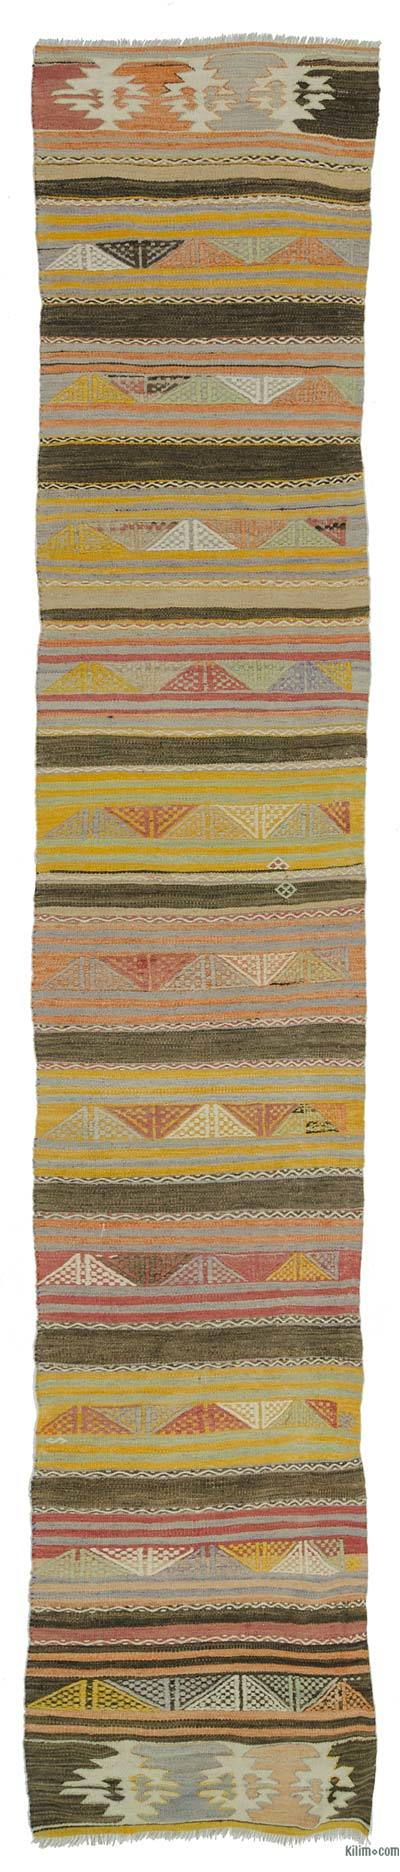 Multicolor Vintage Sivas Kilim Runner - 2'7'' x 12'10'' (31 in. x 154 in.)